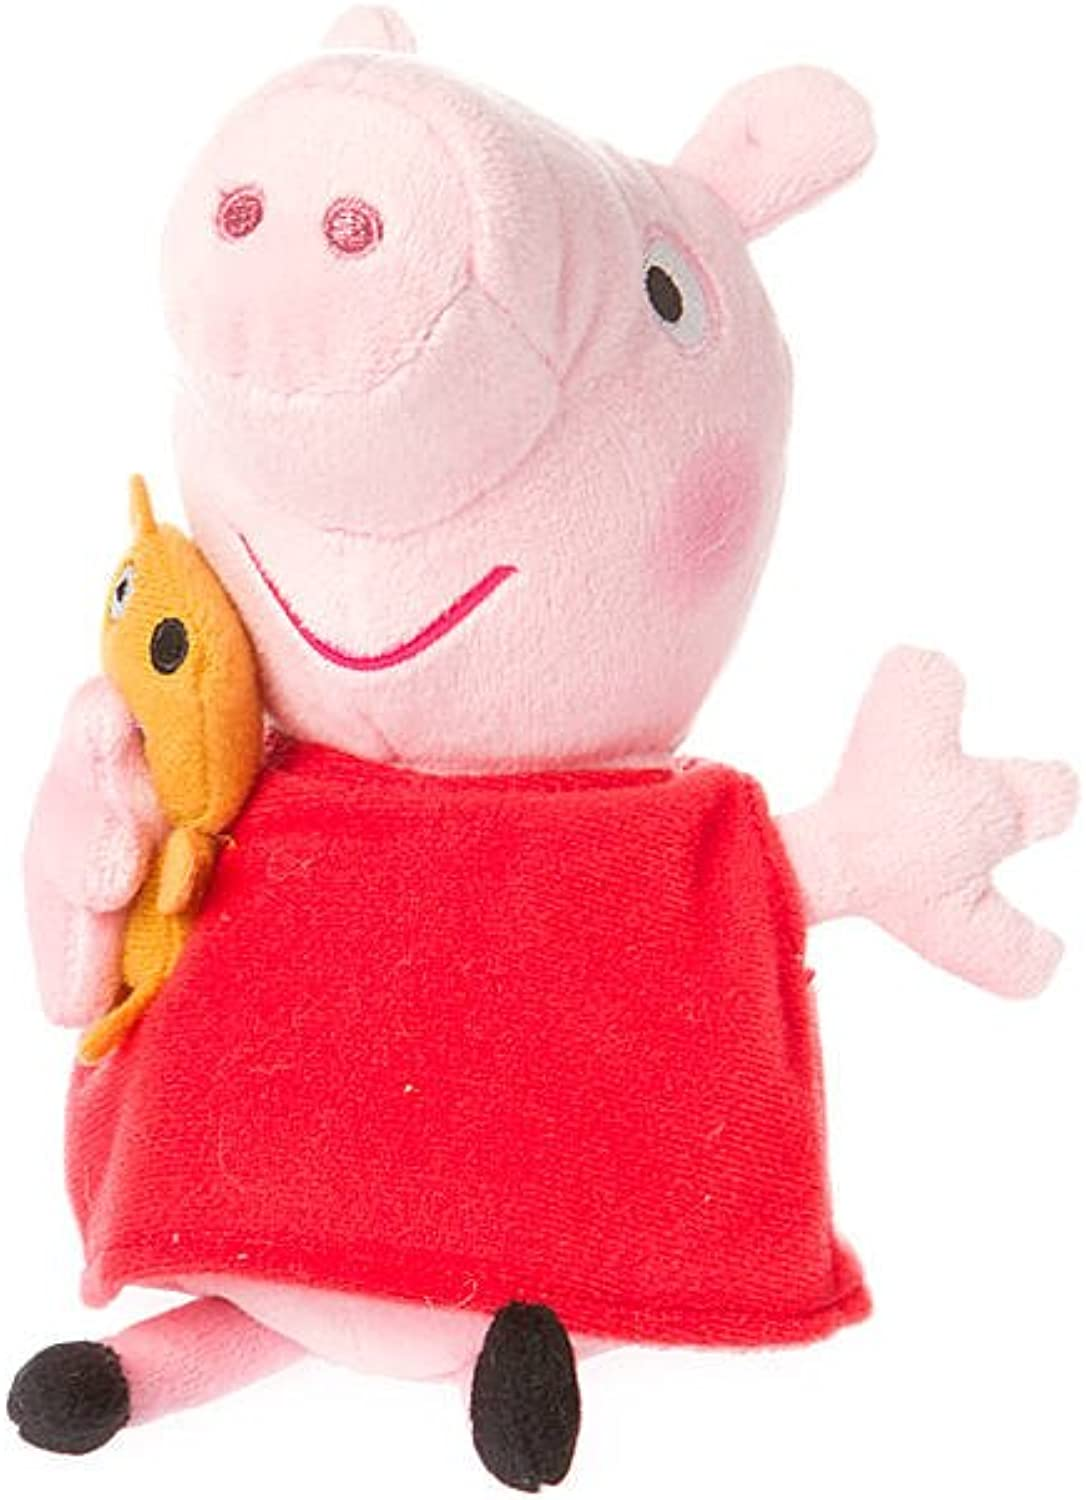 Claire's Accessories Ty Beanie Babies Peppa Pig Plush  8 1 2  Small